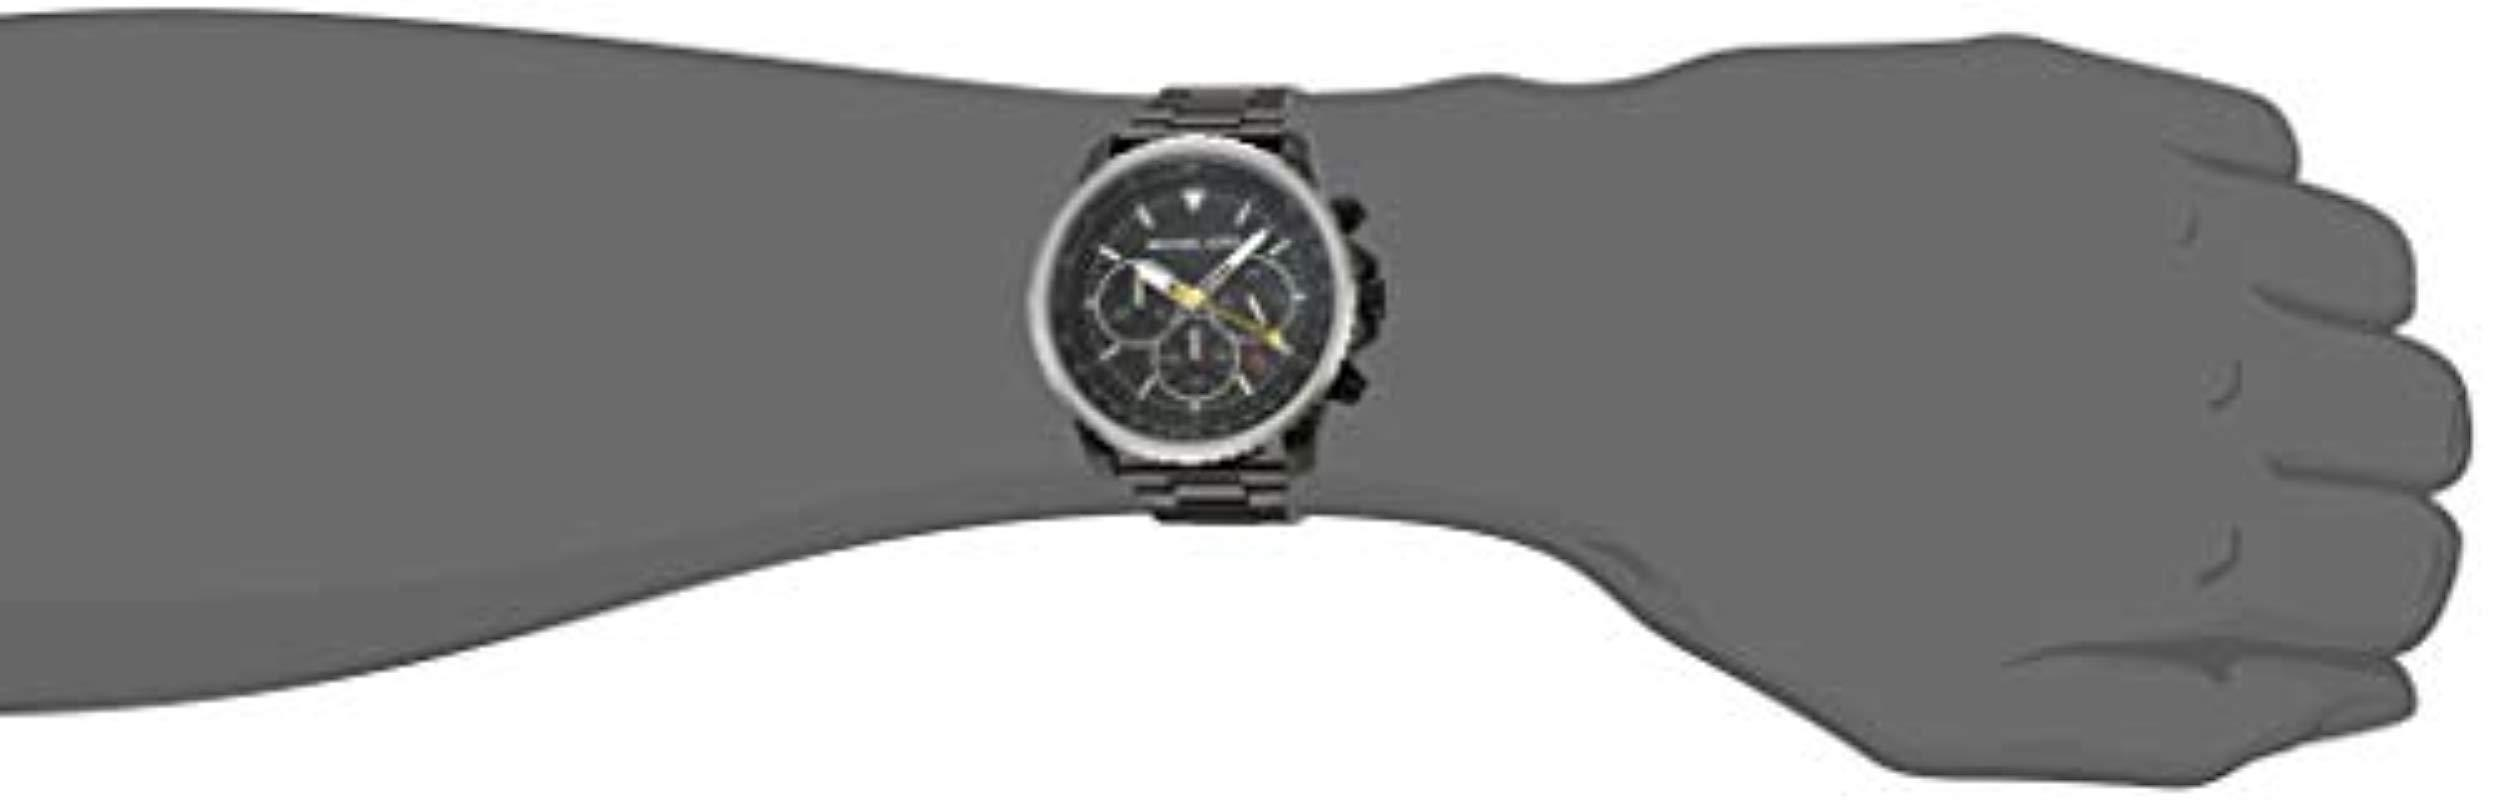 f6478f183e4b Michael Kors - Theroux Analog-quartz Watch With Stainless-steel-plated  Strap